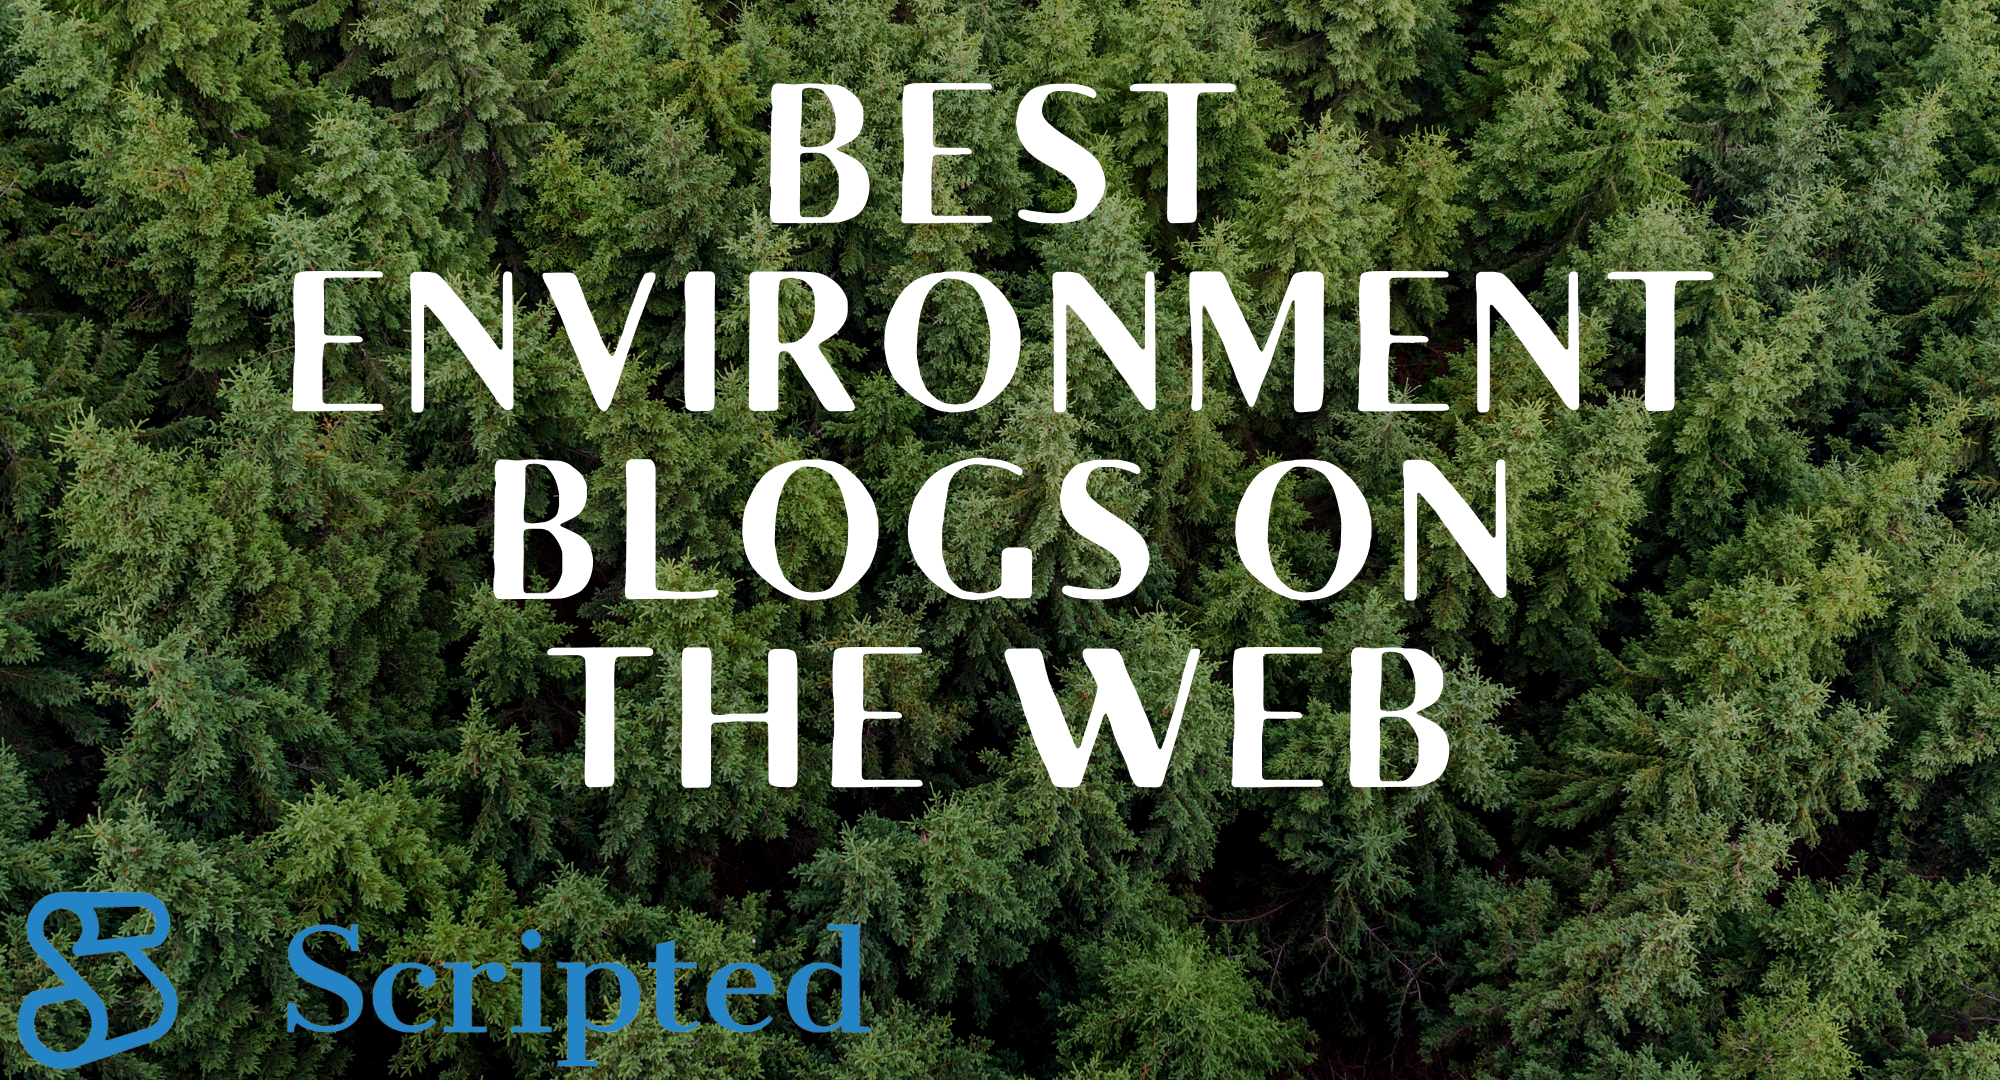 The 16 Best Environmental Blogs On The Web